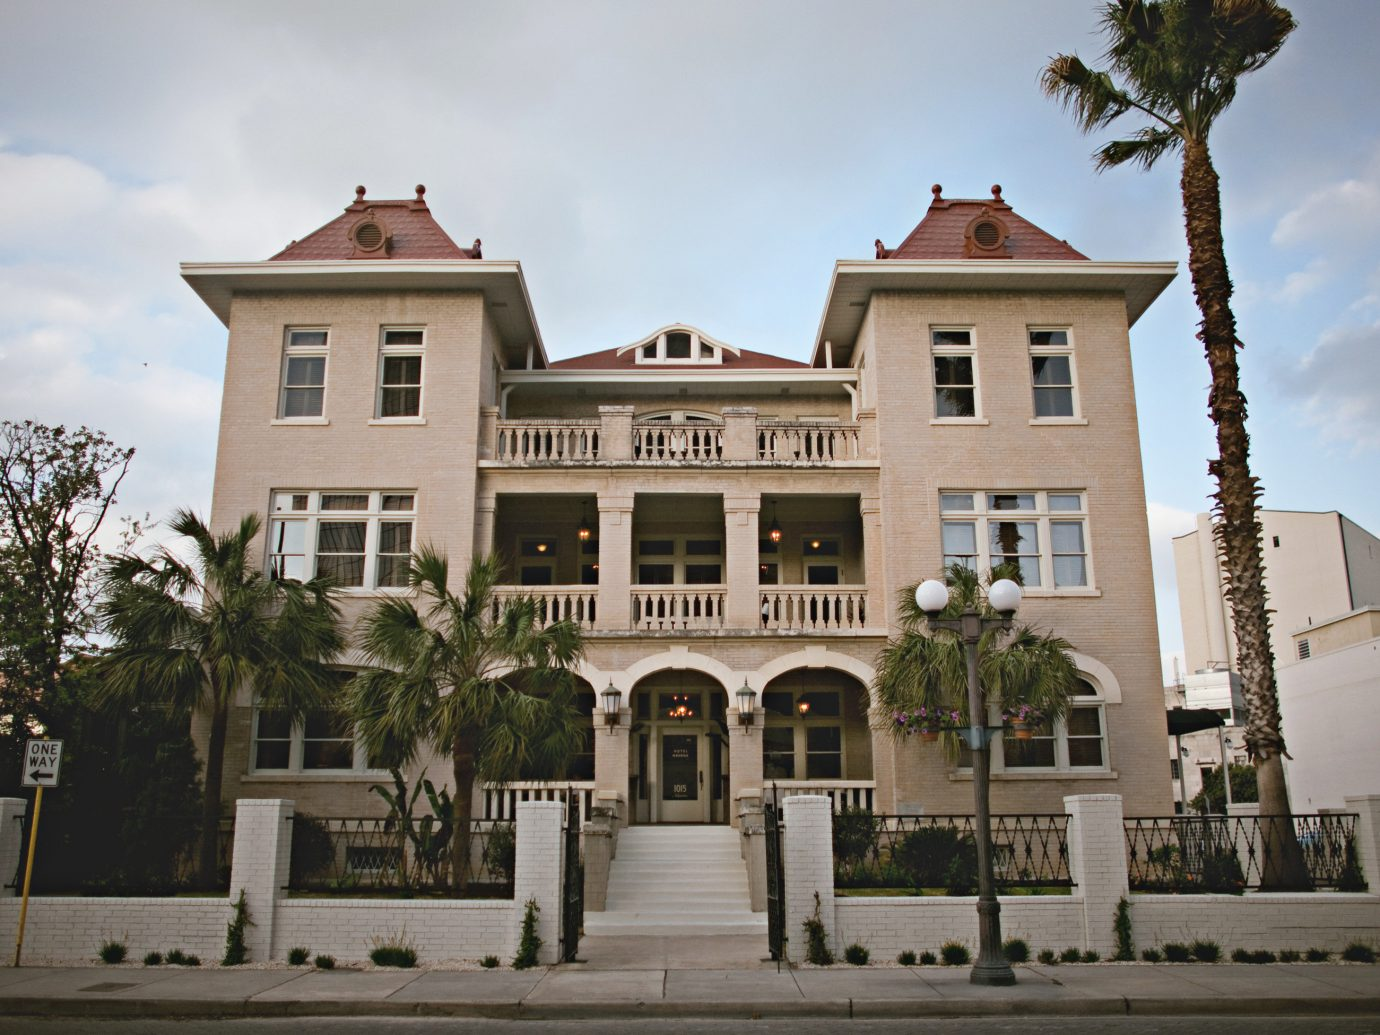 Budget Exterior Historic Modern building outdoor landmark Town neighbourhood Architecture estate town square plaza palace Downtown château facade government building ancient history history mansion